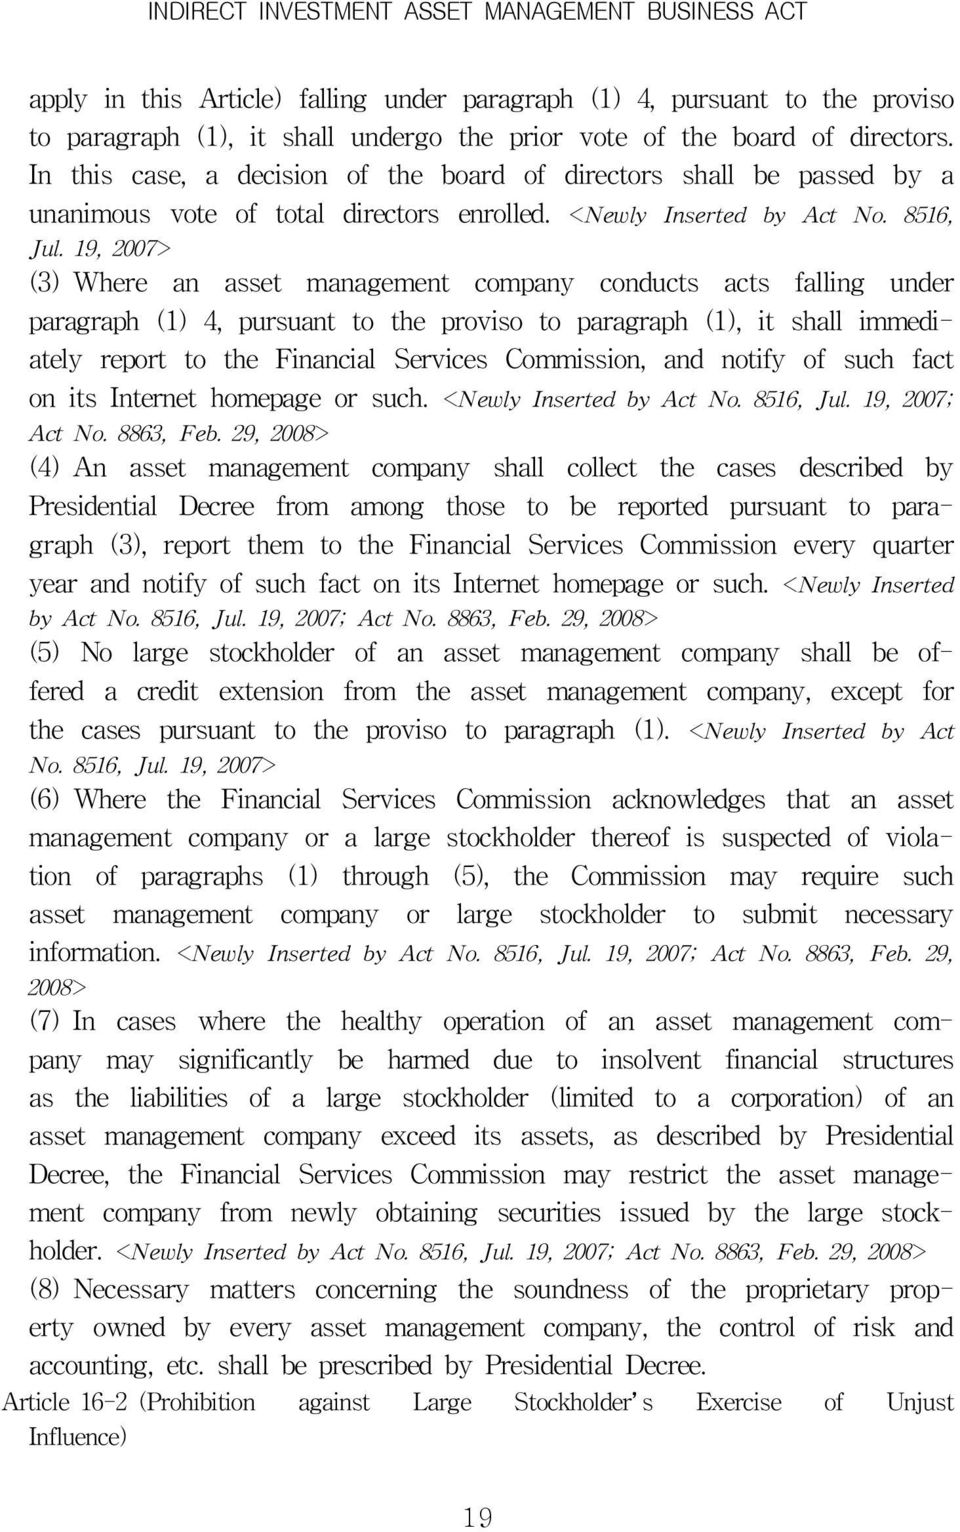 19, 2007> (3) Where an asset management company conducts acts falling under paragraph (1) 4, pursuant to the proviso to paragraph (1), it shall immediately report to the Financial Services